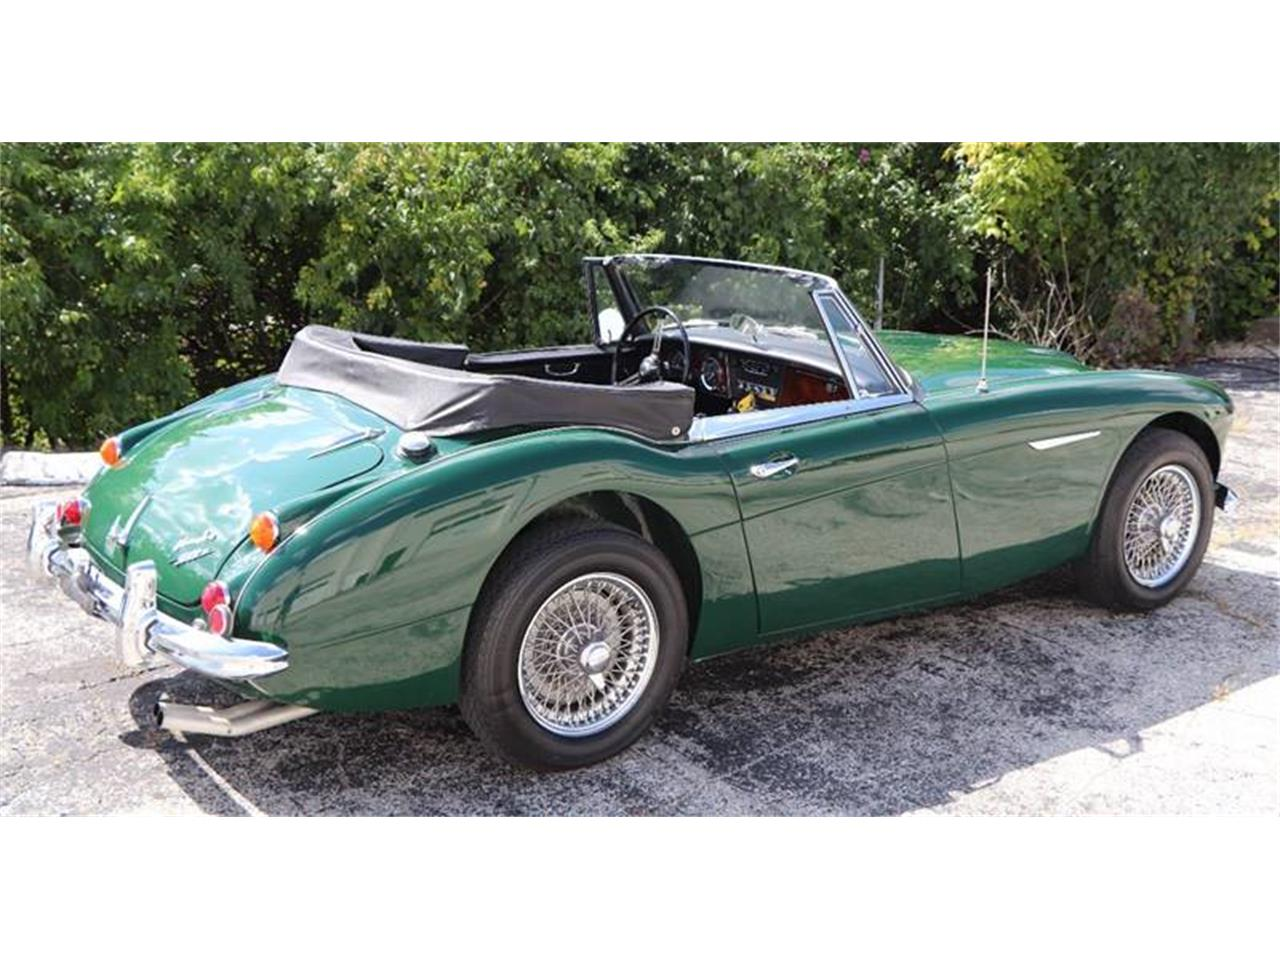 1967 Austin-Healey 3000 Mark III BJ8 for sale in St Louis, MO – photo 8